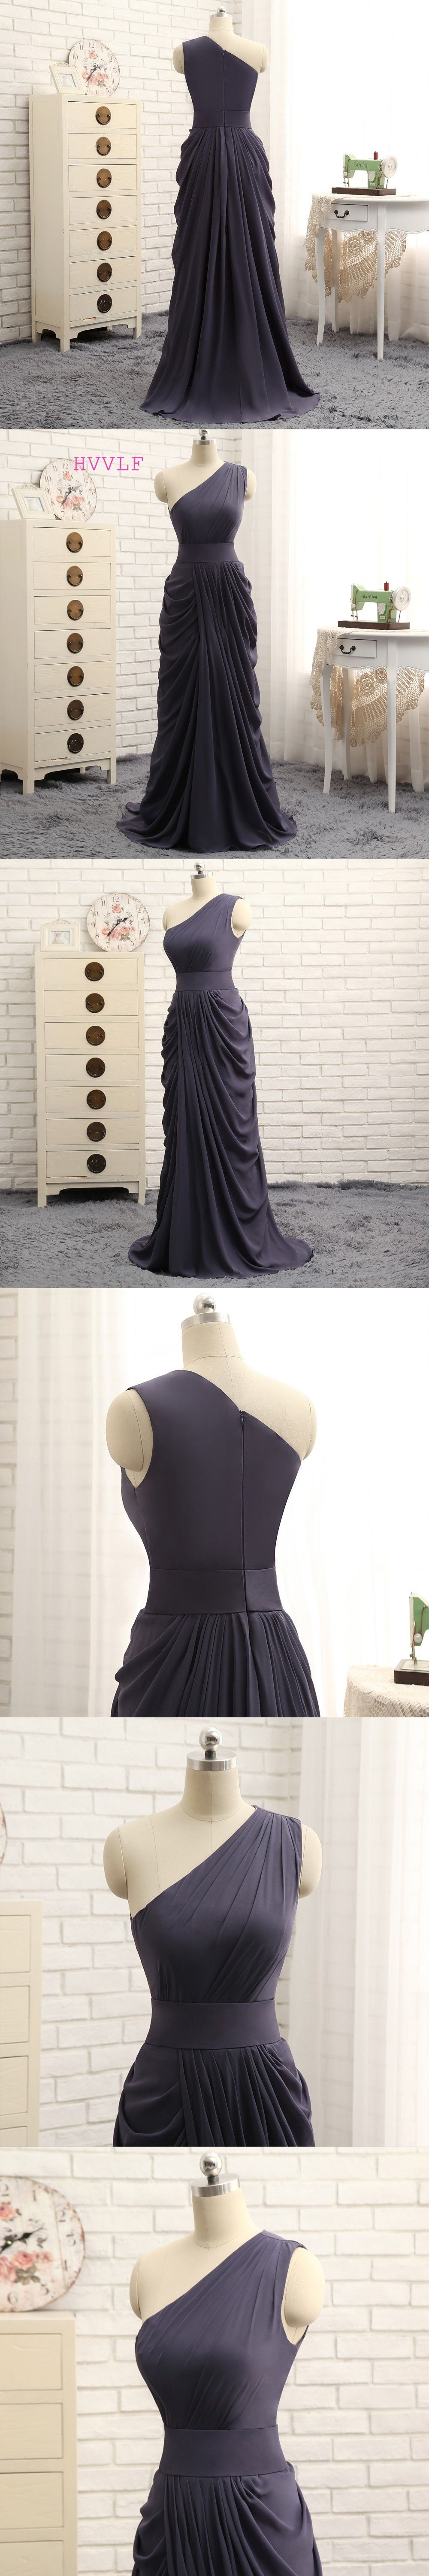 Hvvlf 2018 cheap bridesmaid dresses under 50 a line one shoulder hvvlf 2018 cheap bridesmaid dresses under 50 a line one shoulder gray chiffon pleated ombrellifo Gallery